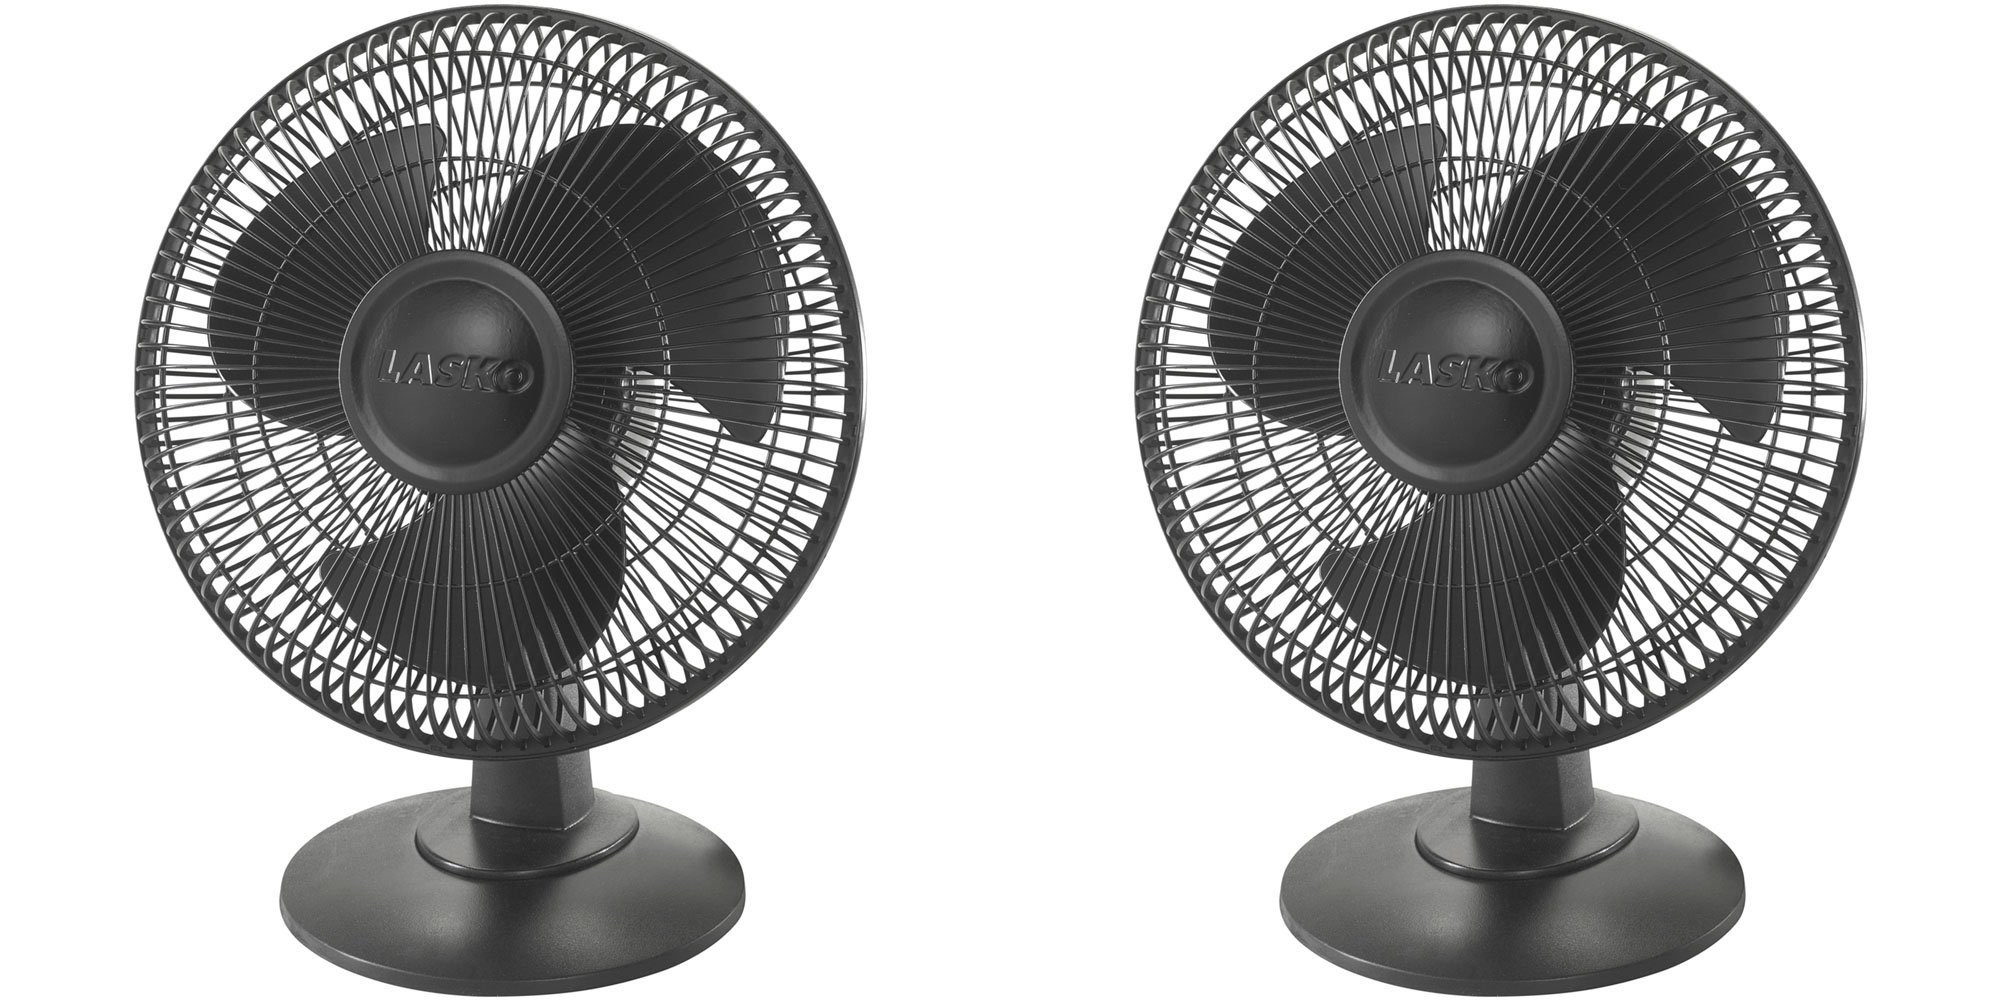 The Lasko 12 Inch Table Fan In Black Just Hit Its Amazon All Time Low  (Prime Only): $19.50 Shipped (Reg. $25+)